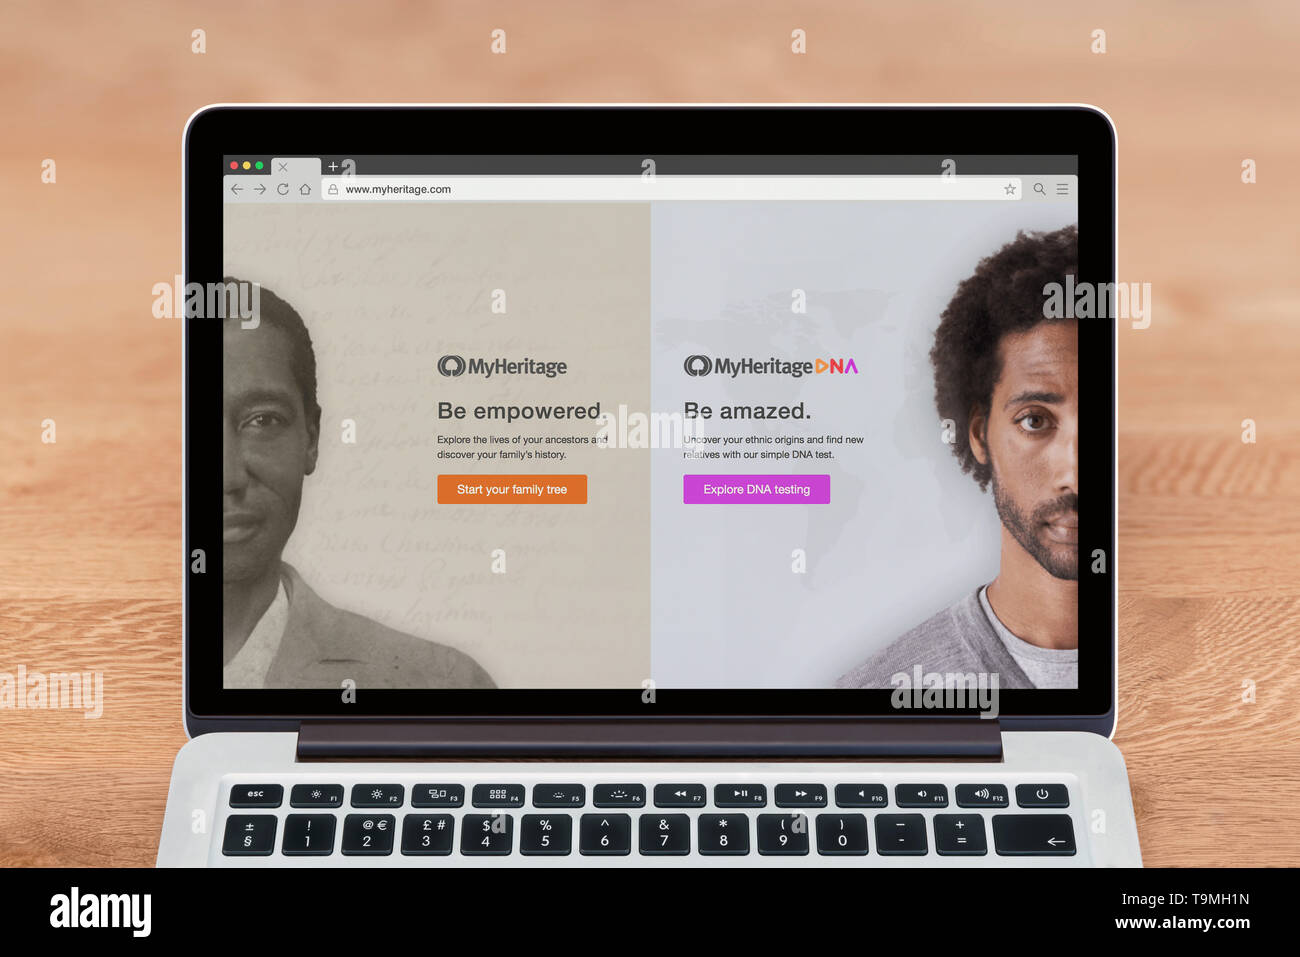 An Apple Macbook displays the MyHeritage website (Editorial use only). - Stock Image